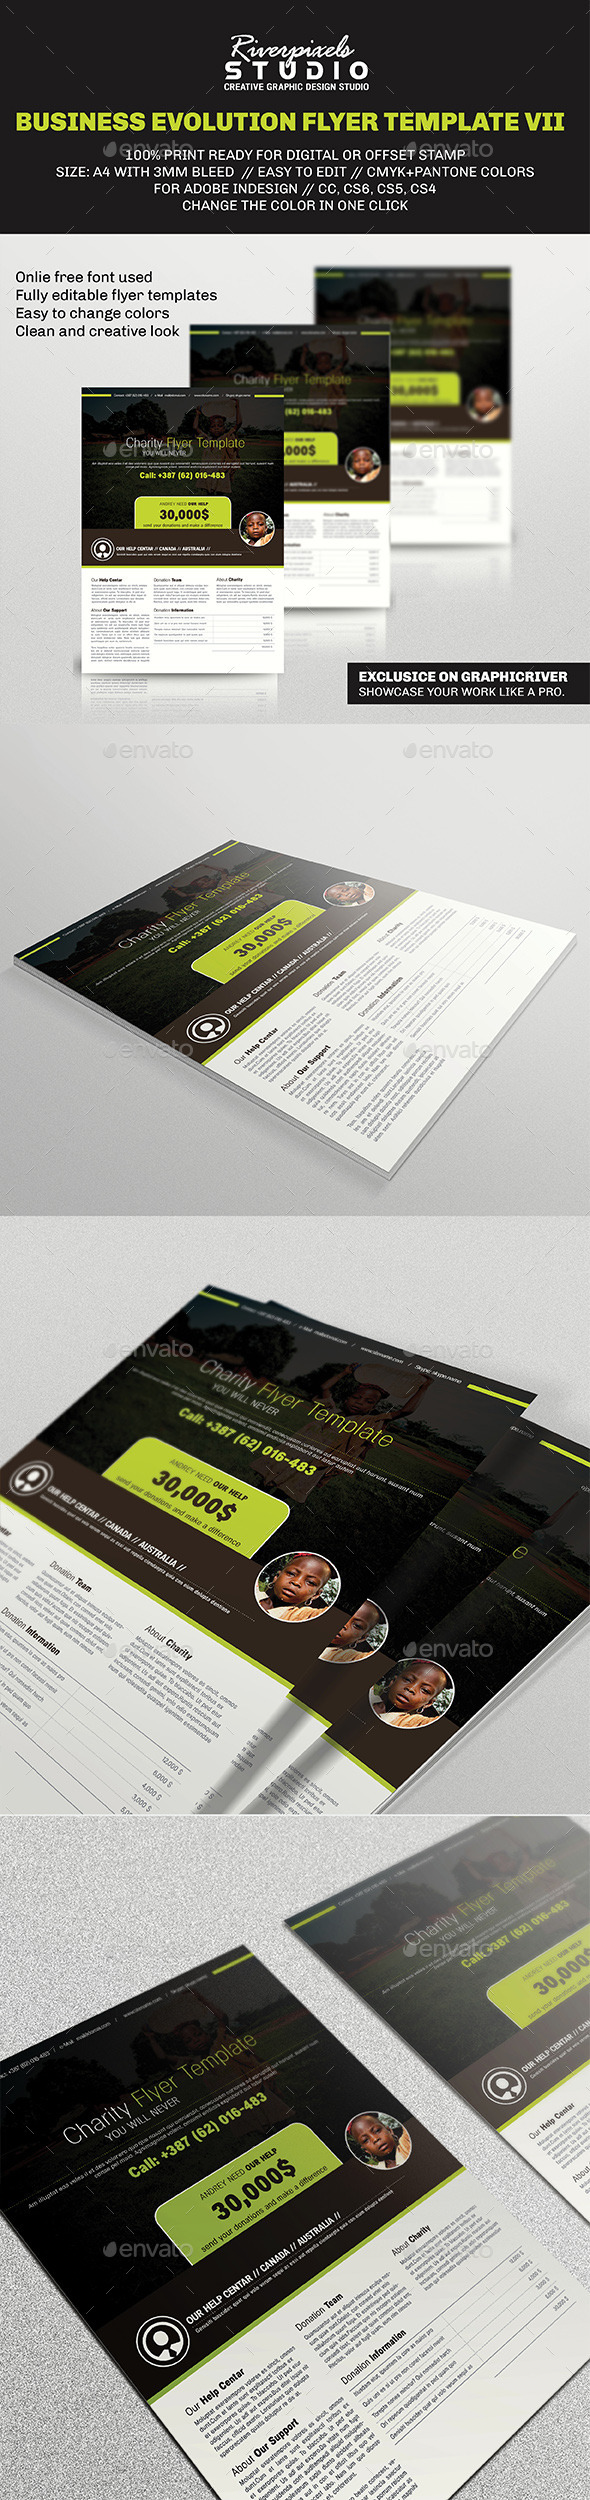 Business Evolution Flyer Template VII - Corporate Flyers